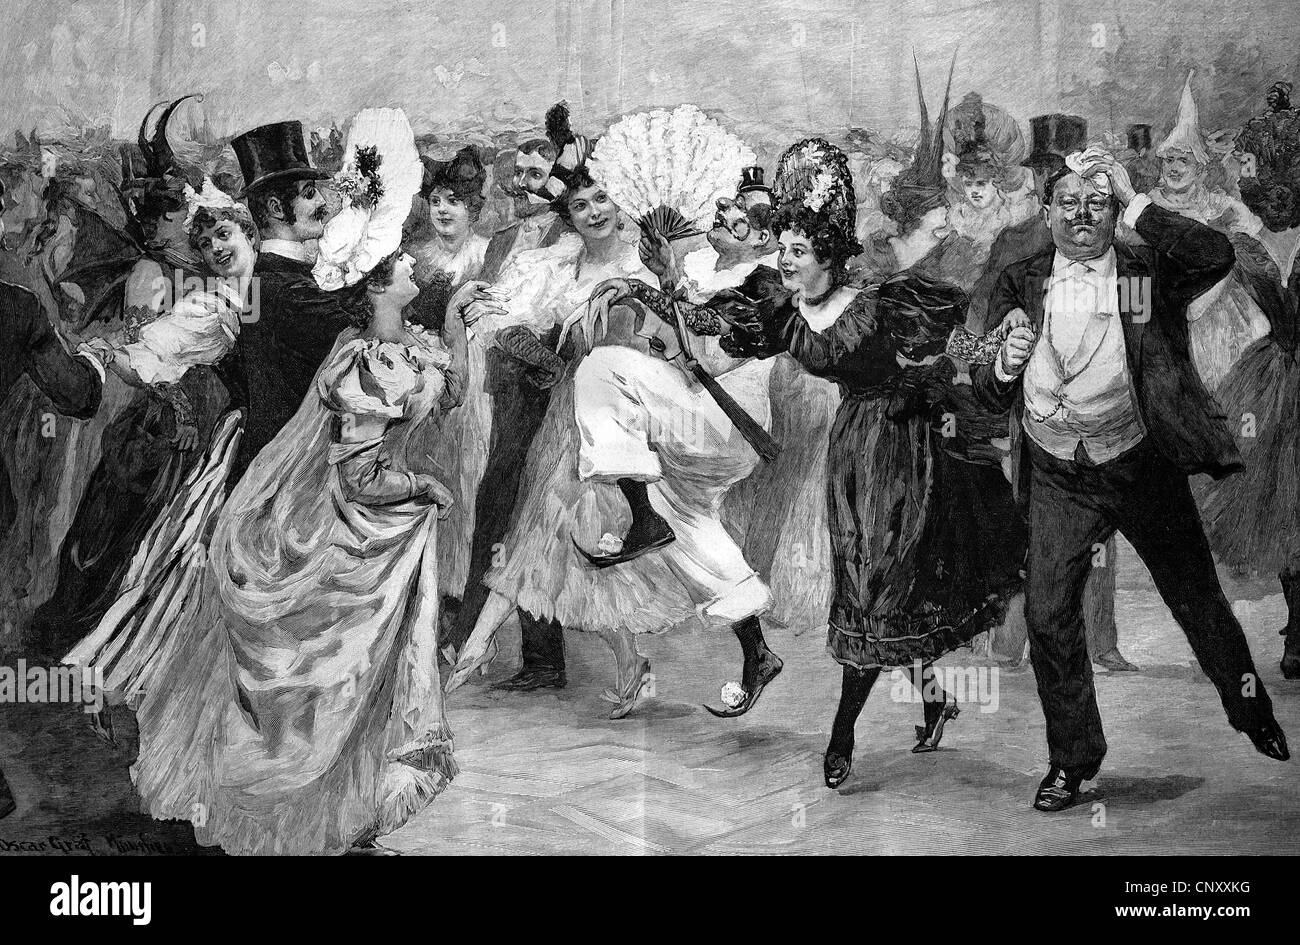 Francaise, dance at the carnival, historic wood engraving, about 1897 - Stock Image